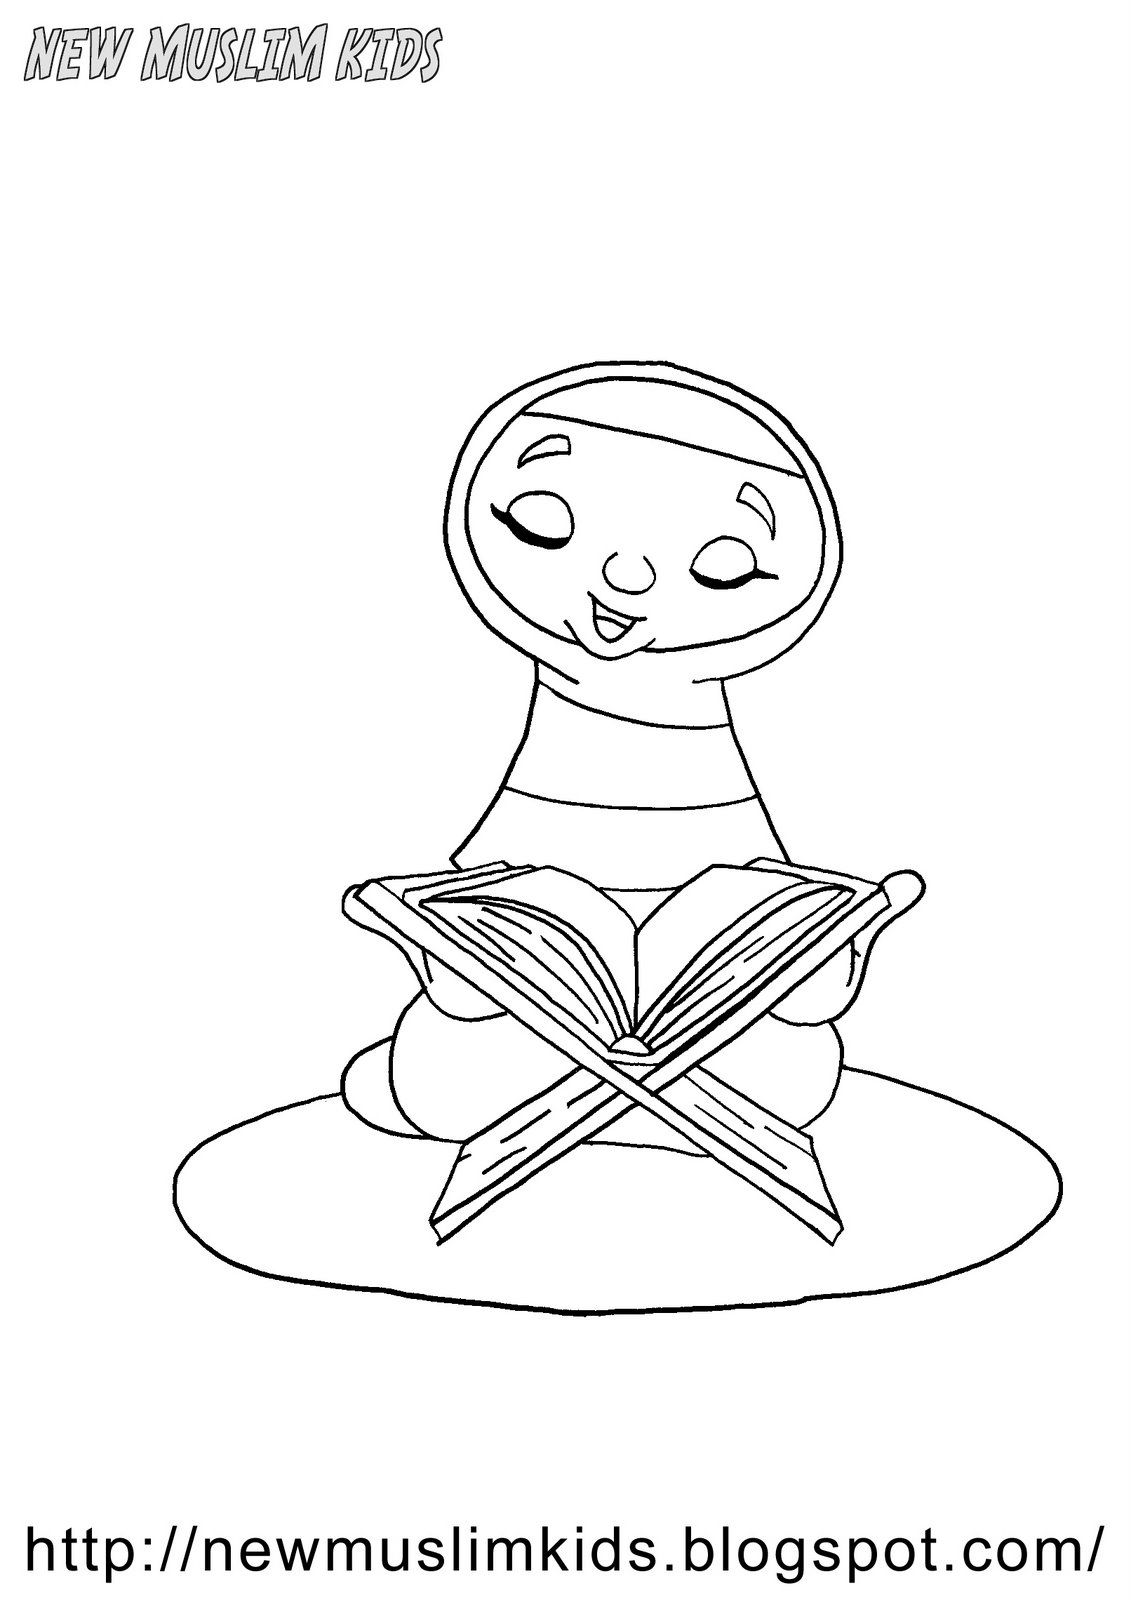 Girl Reading Quran Coloring Page Anime MuslimIslam For KidsIslamic